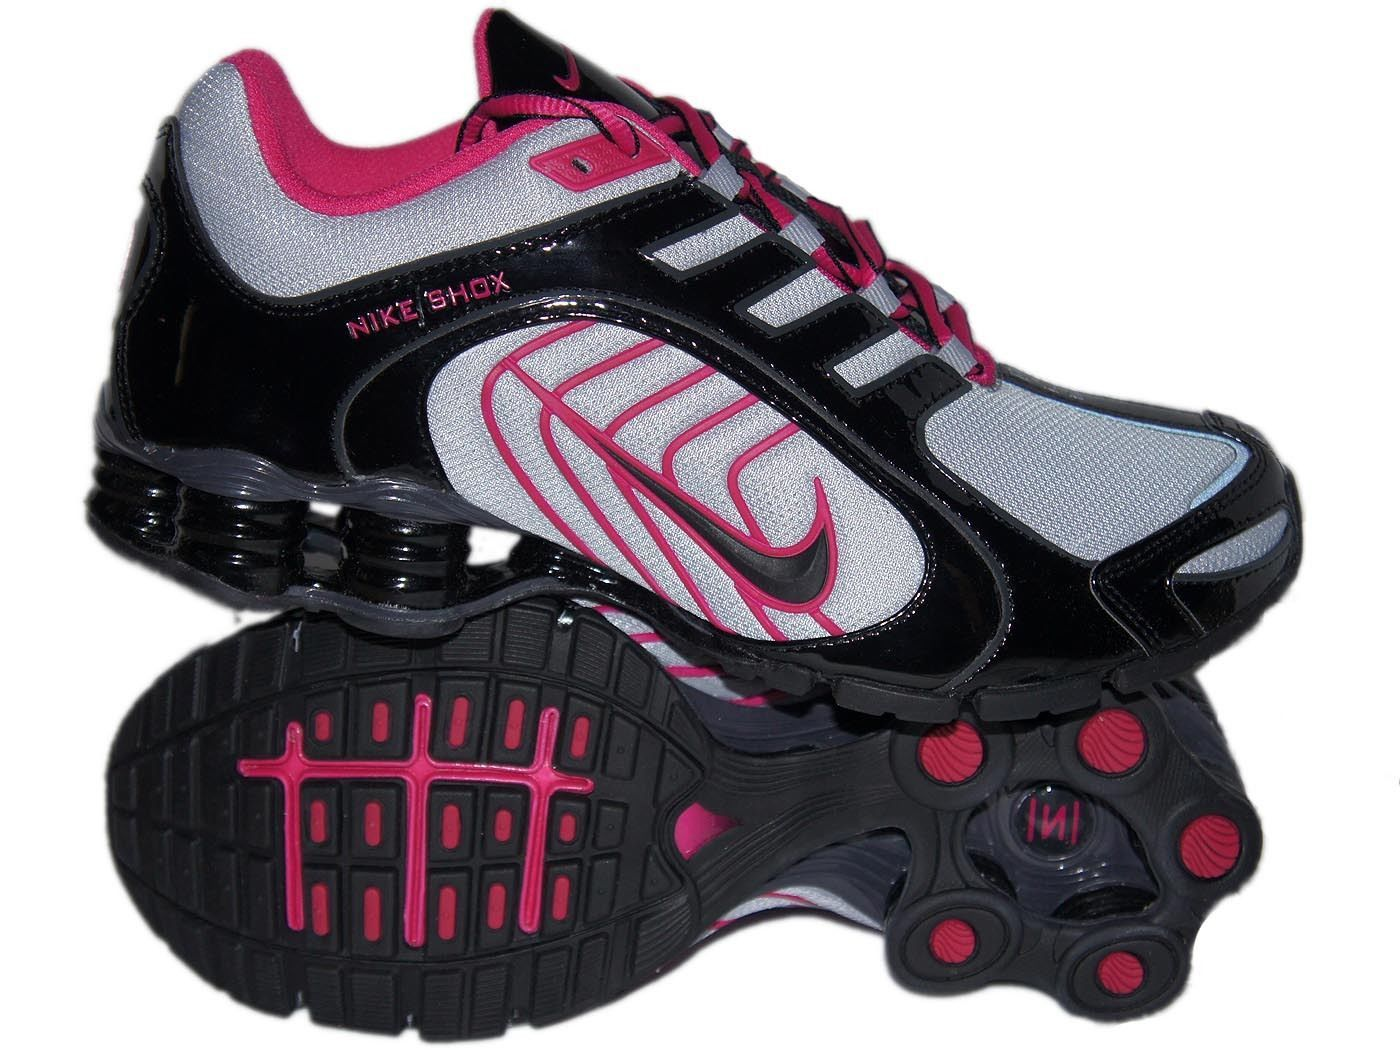 ... new zealand womens nike shox navina size 7.5 grey black fireberry  running 375a1 fb41a 620a4e1bf3